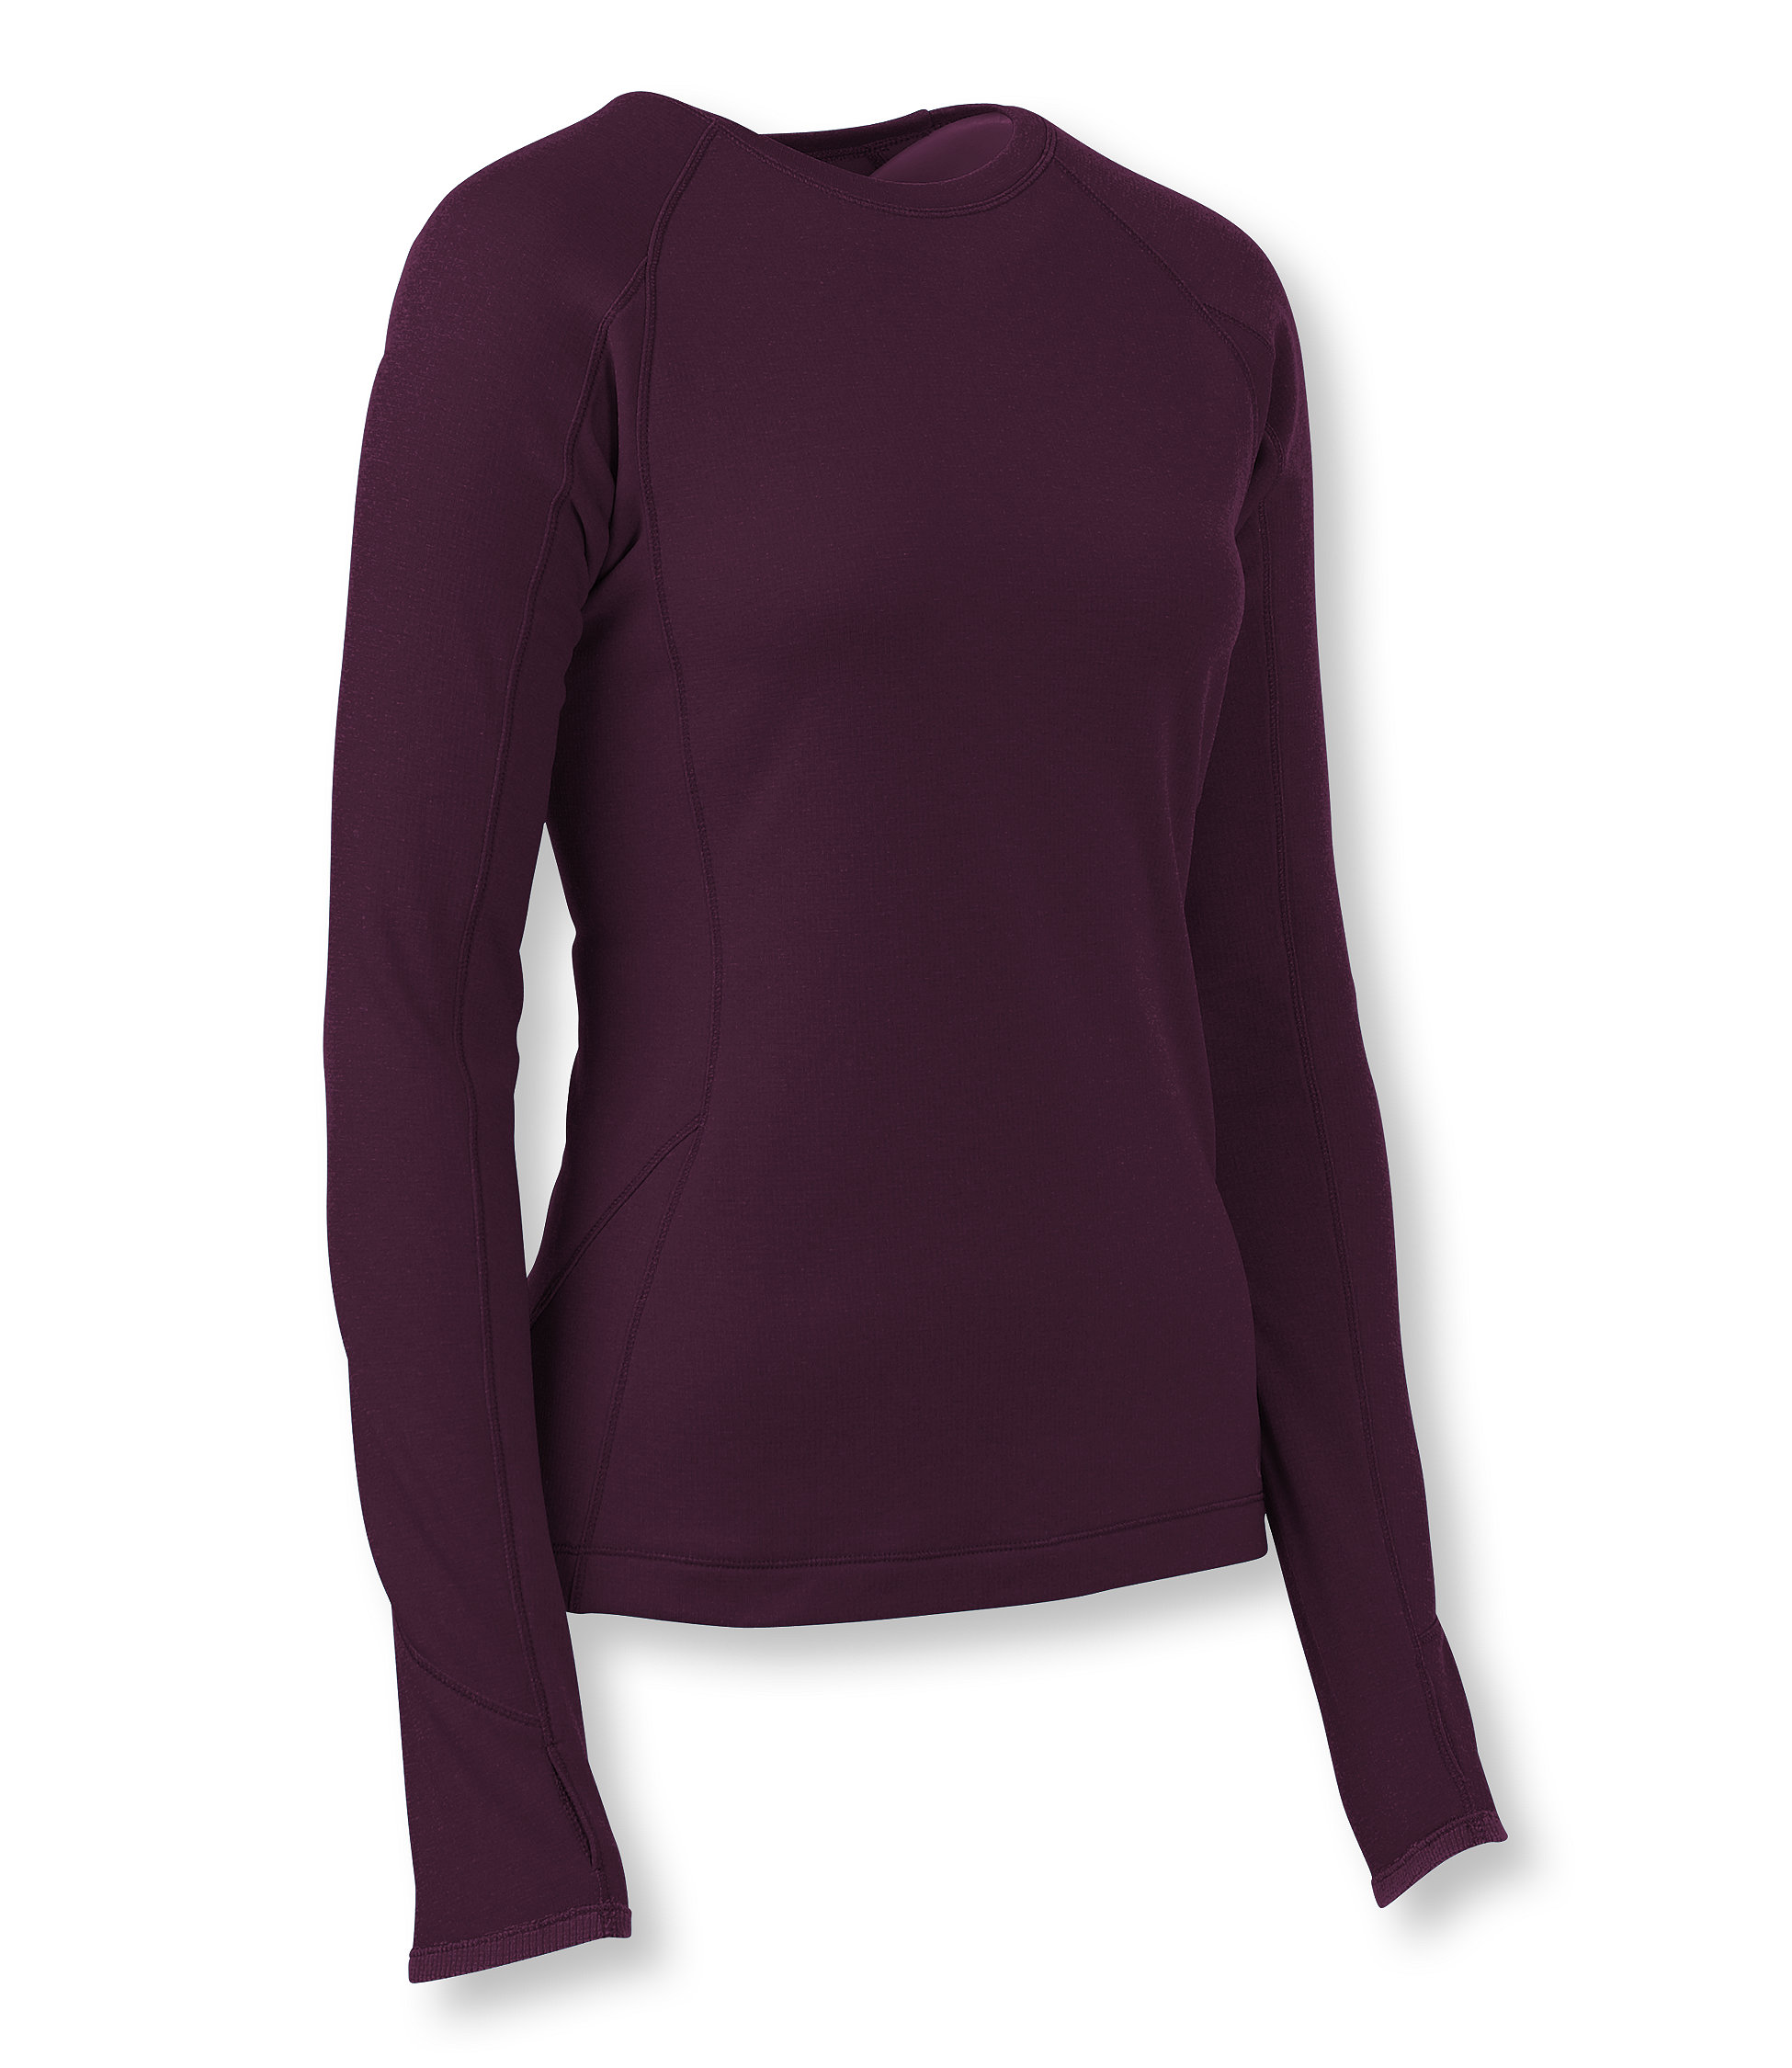 L.L.Bean Power Dry Stretch Base Layer, Expedition Weight Long-Sleeve Crew